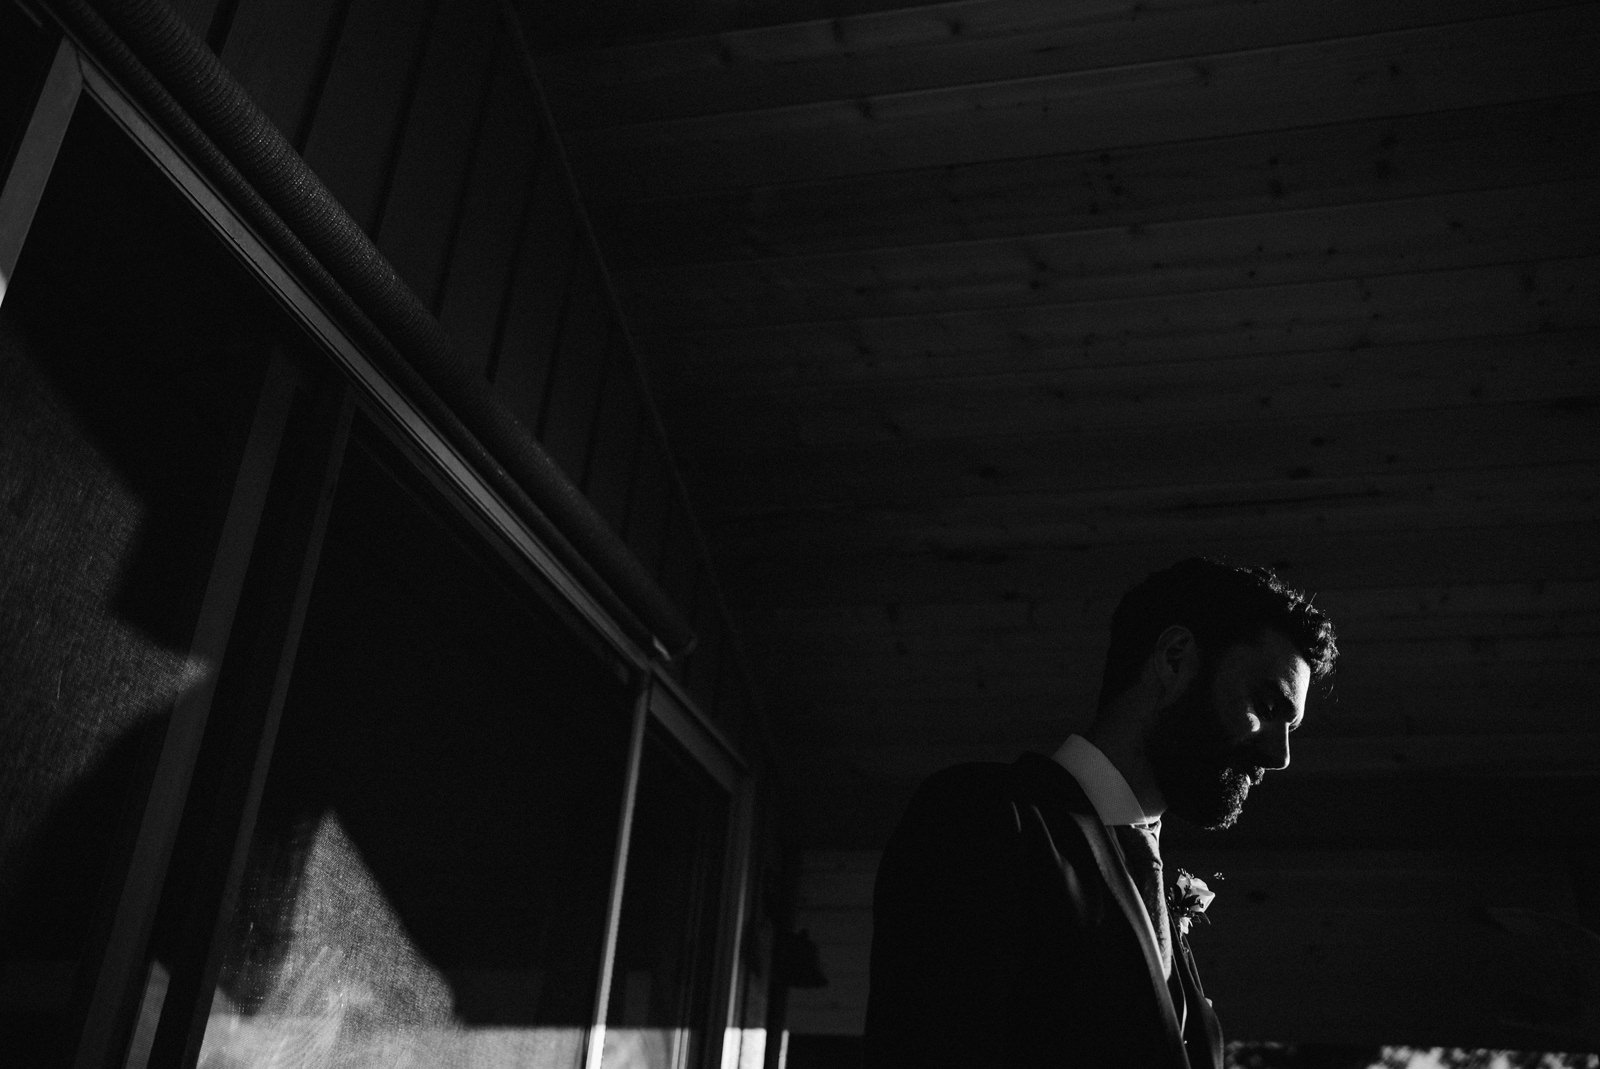 046-dramatic-pnw-elopement-photo-on-herron-island-by-seattle-wedding-photographer-ryan-flynn.jpg